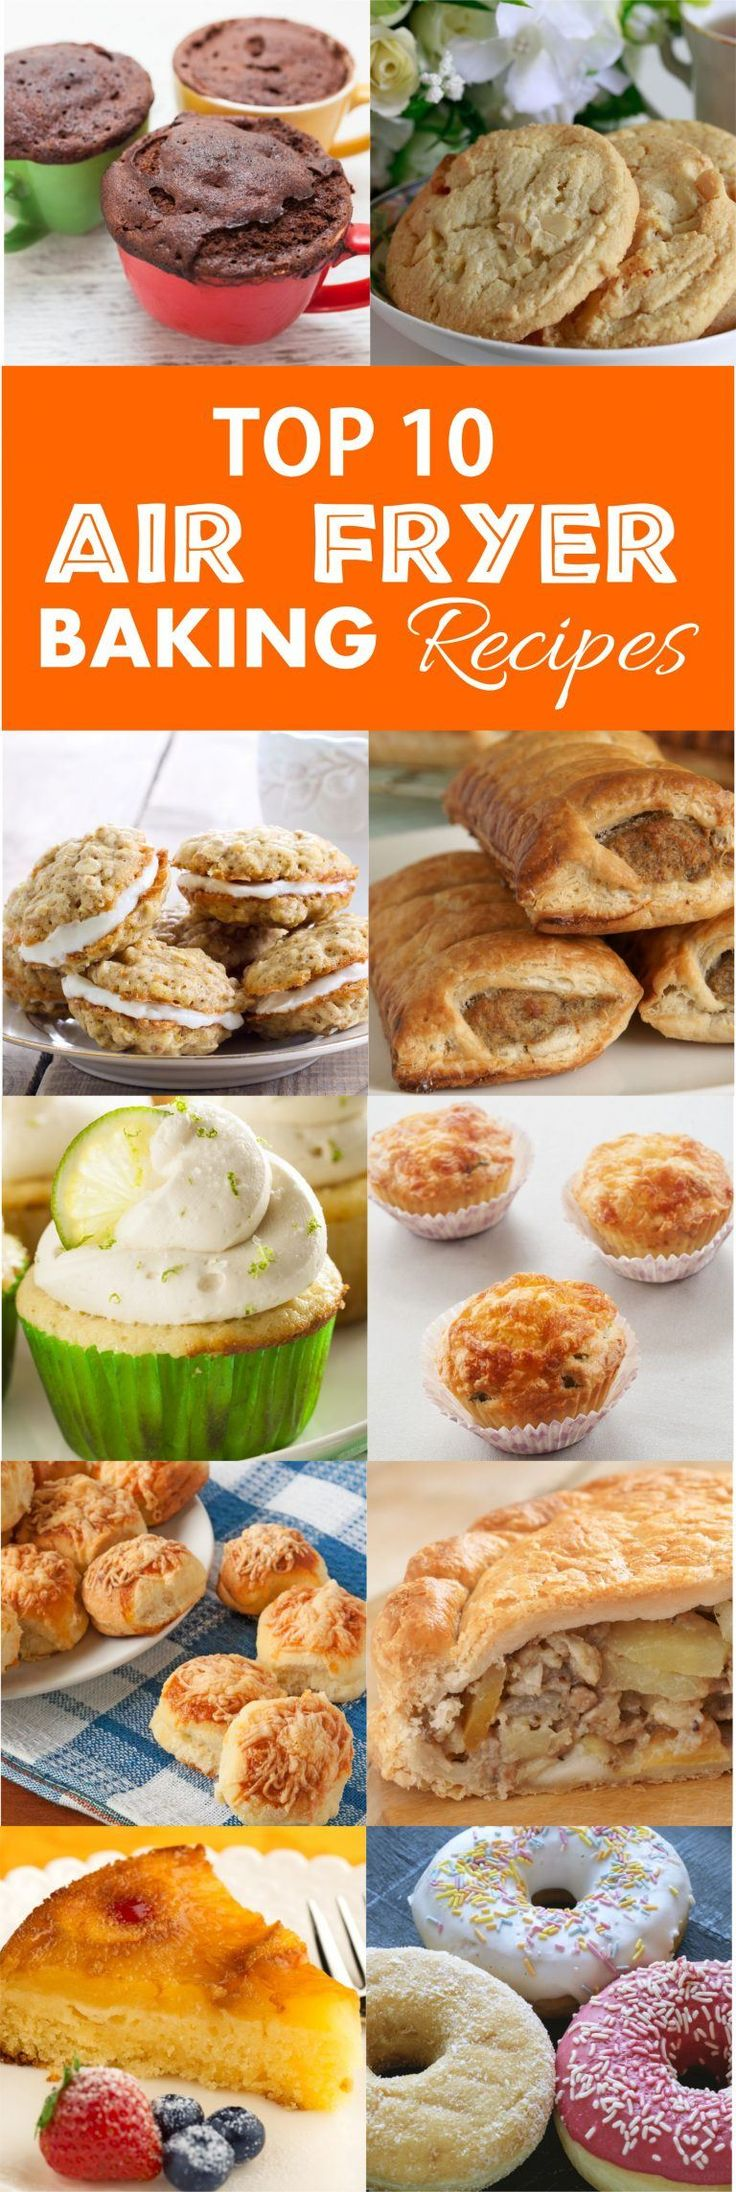 RecipeThis.com | Top 10 Air Fryer Baking Recipes